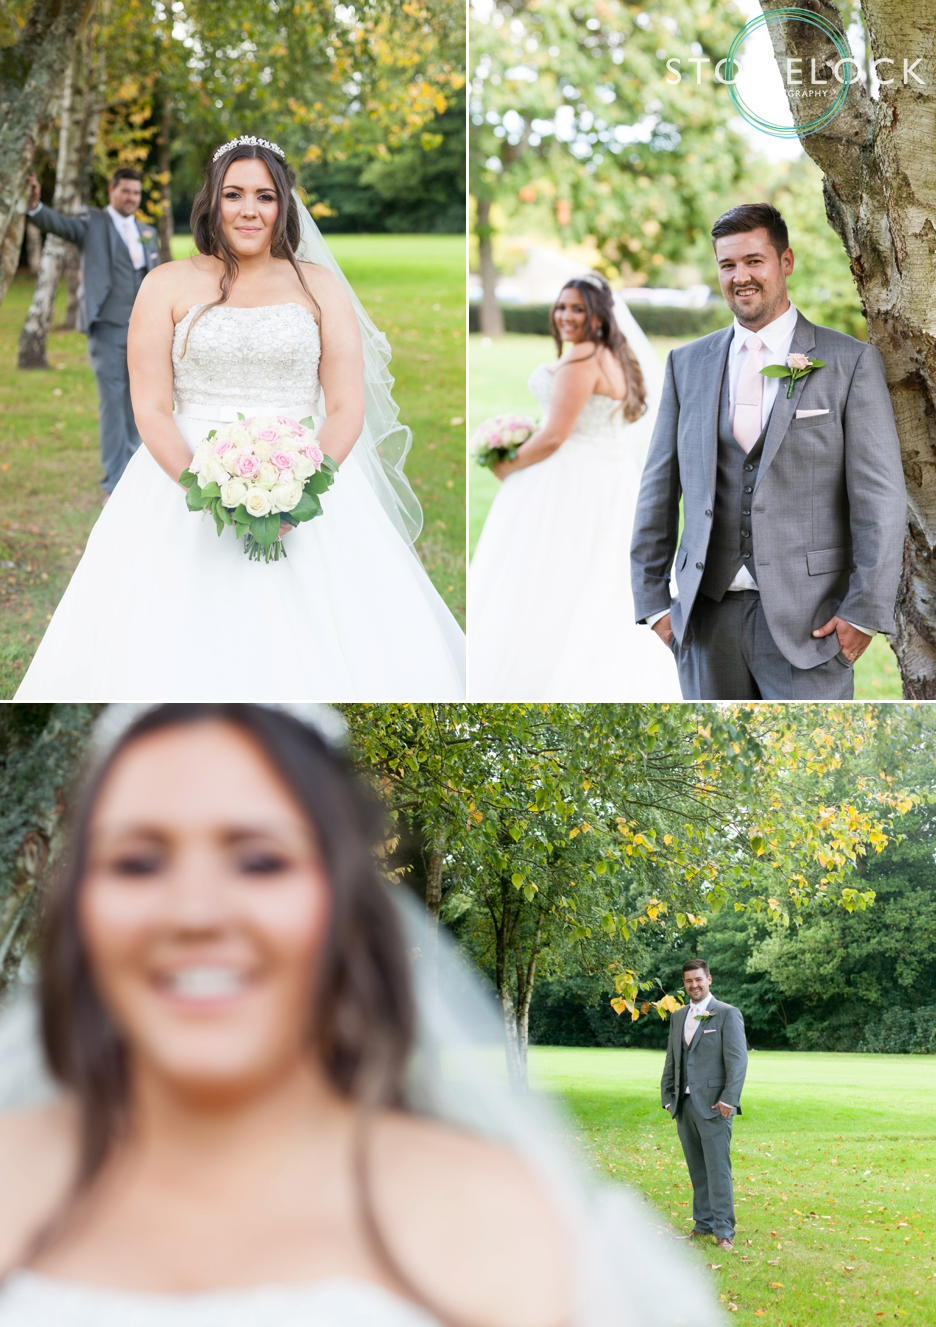 Bride & Groom Wedding Photography at Copthorne Effingham Park Hotel Surrey